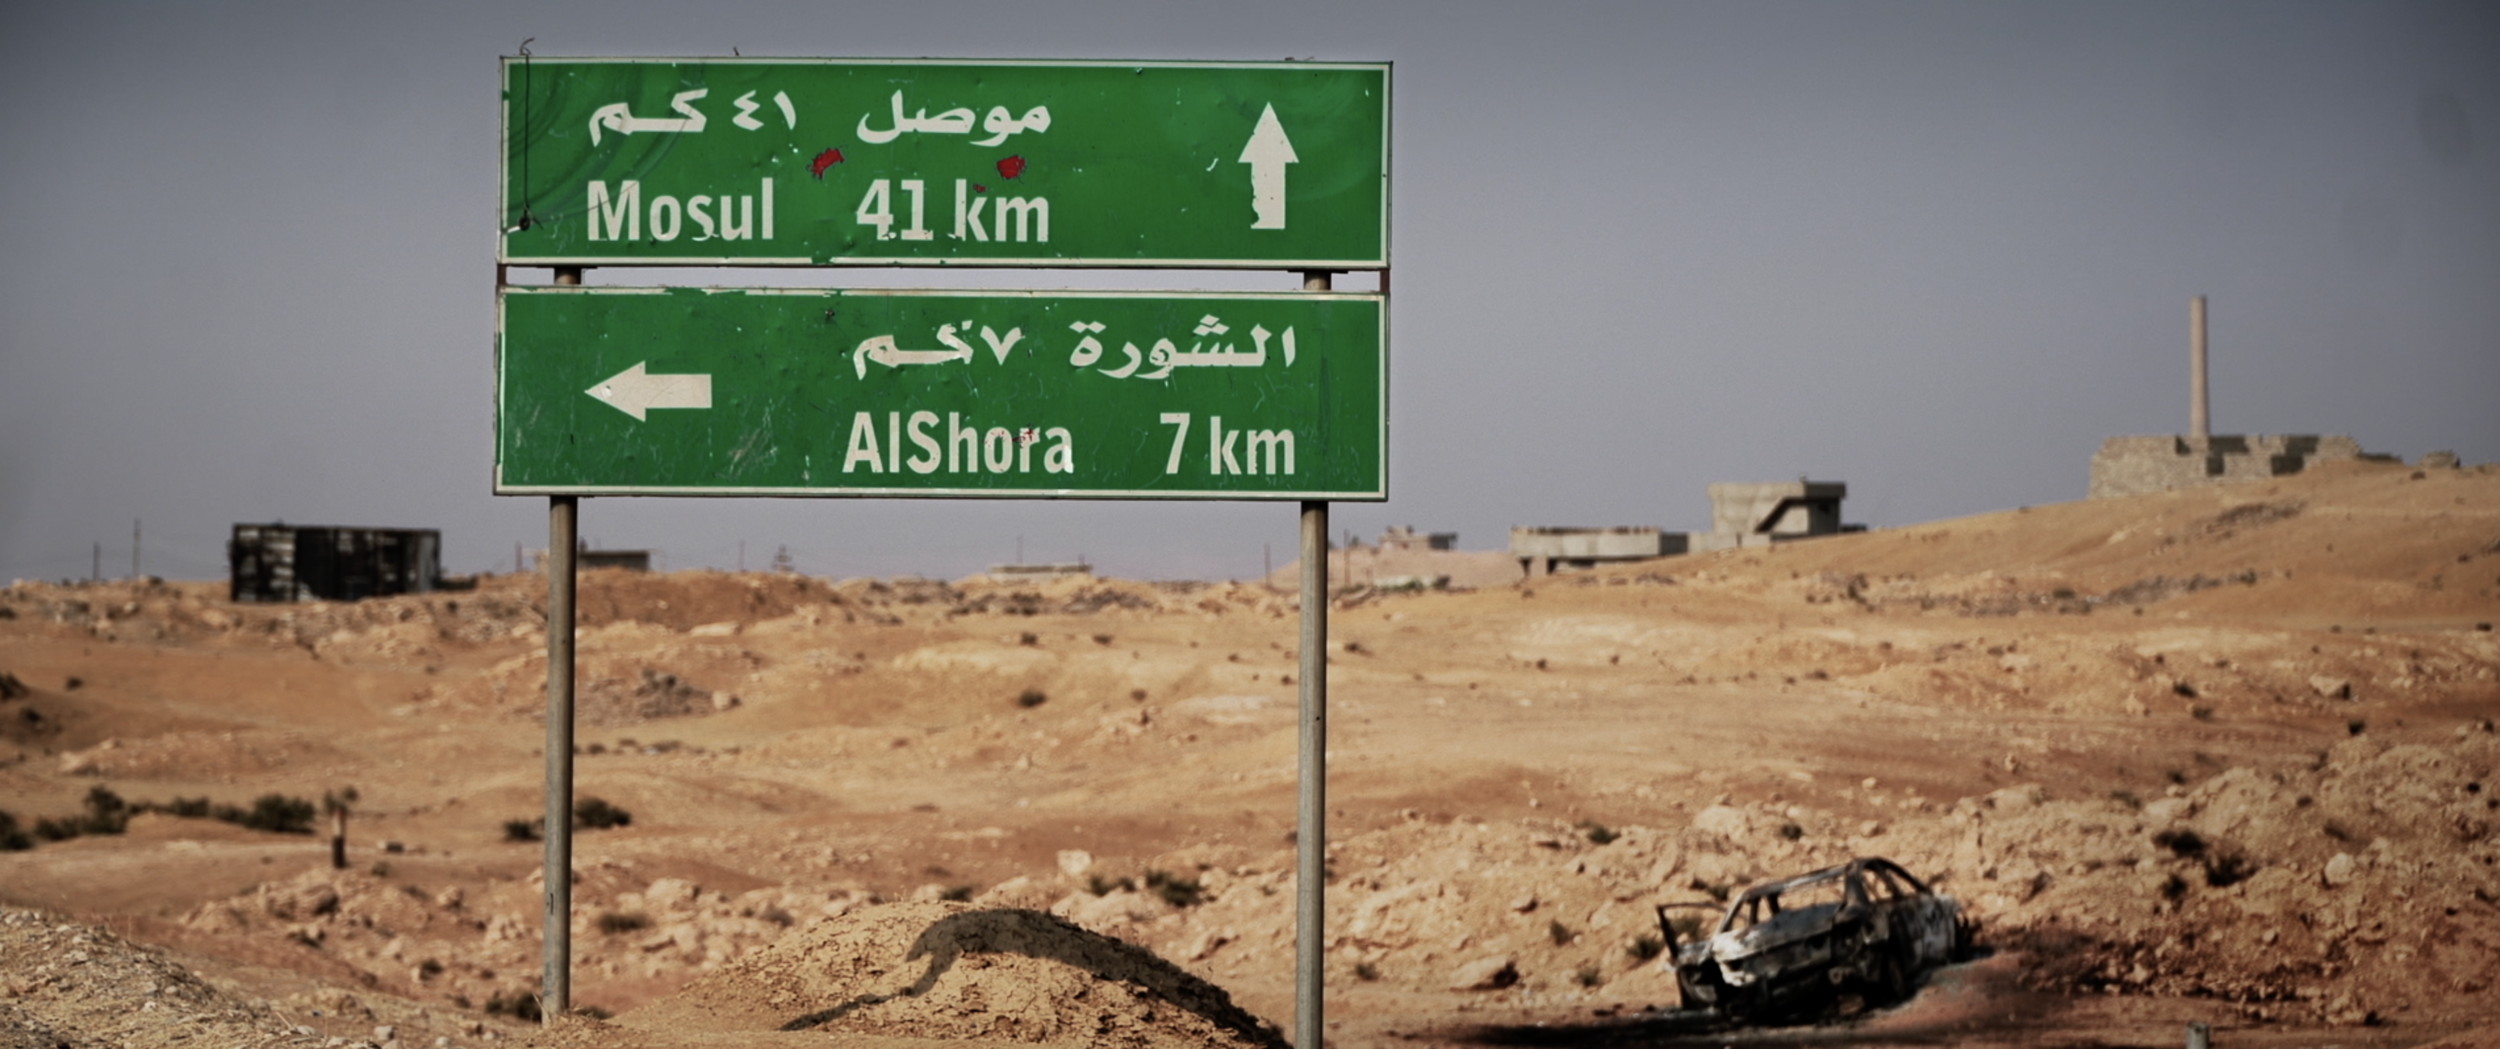 Road sign to Mosul.png